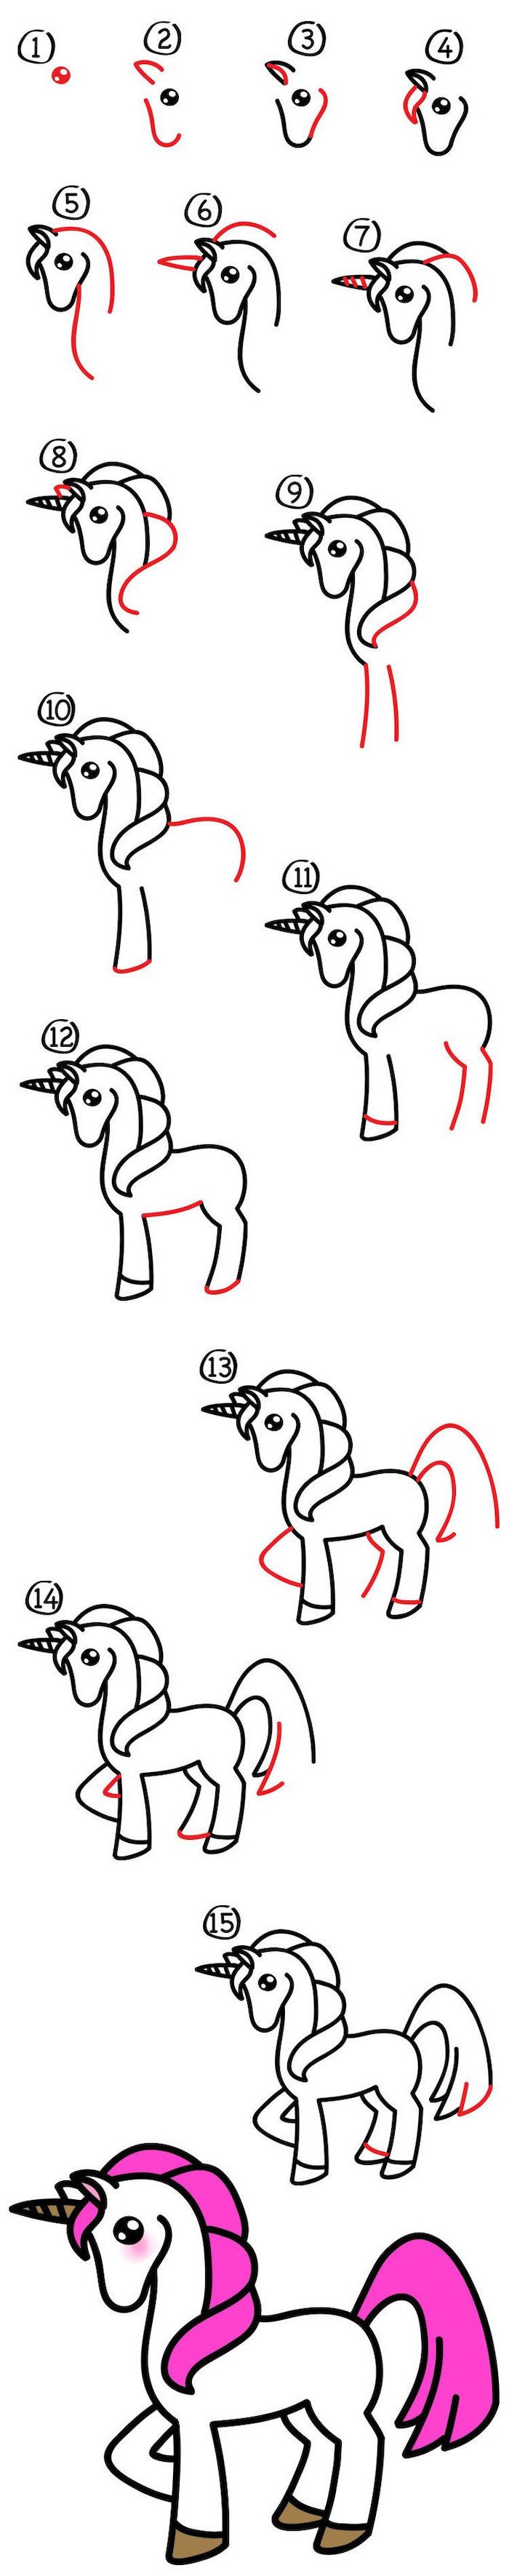 how to draw a unicorn step by step, twenty step drawing tutorial, drawn on white background